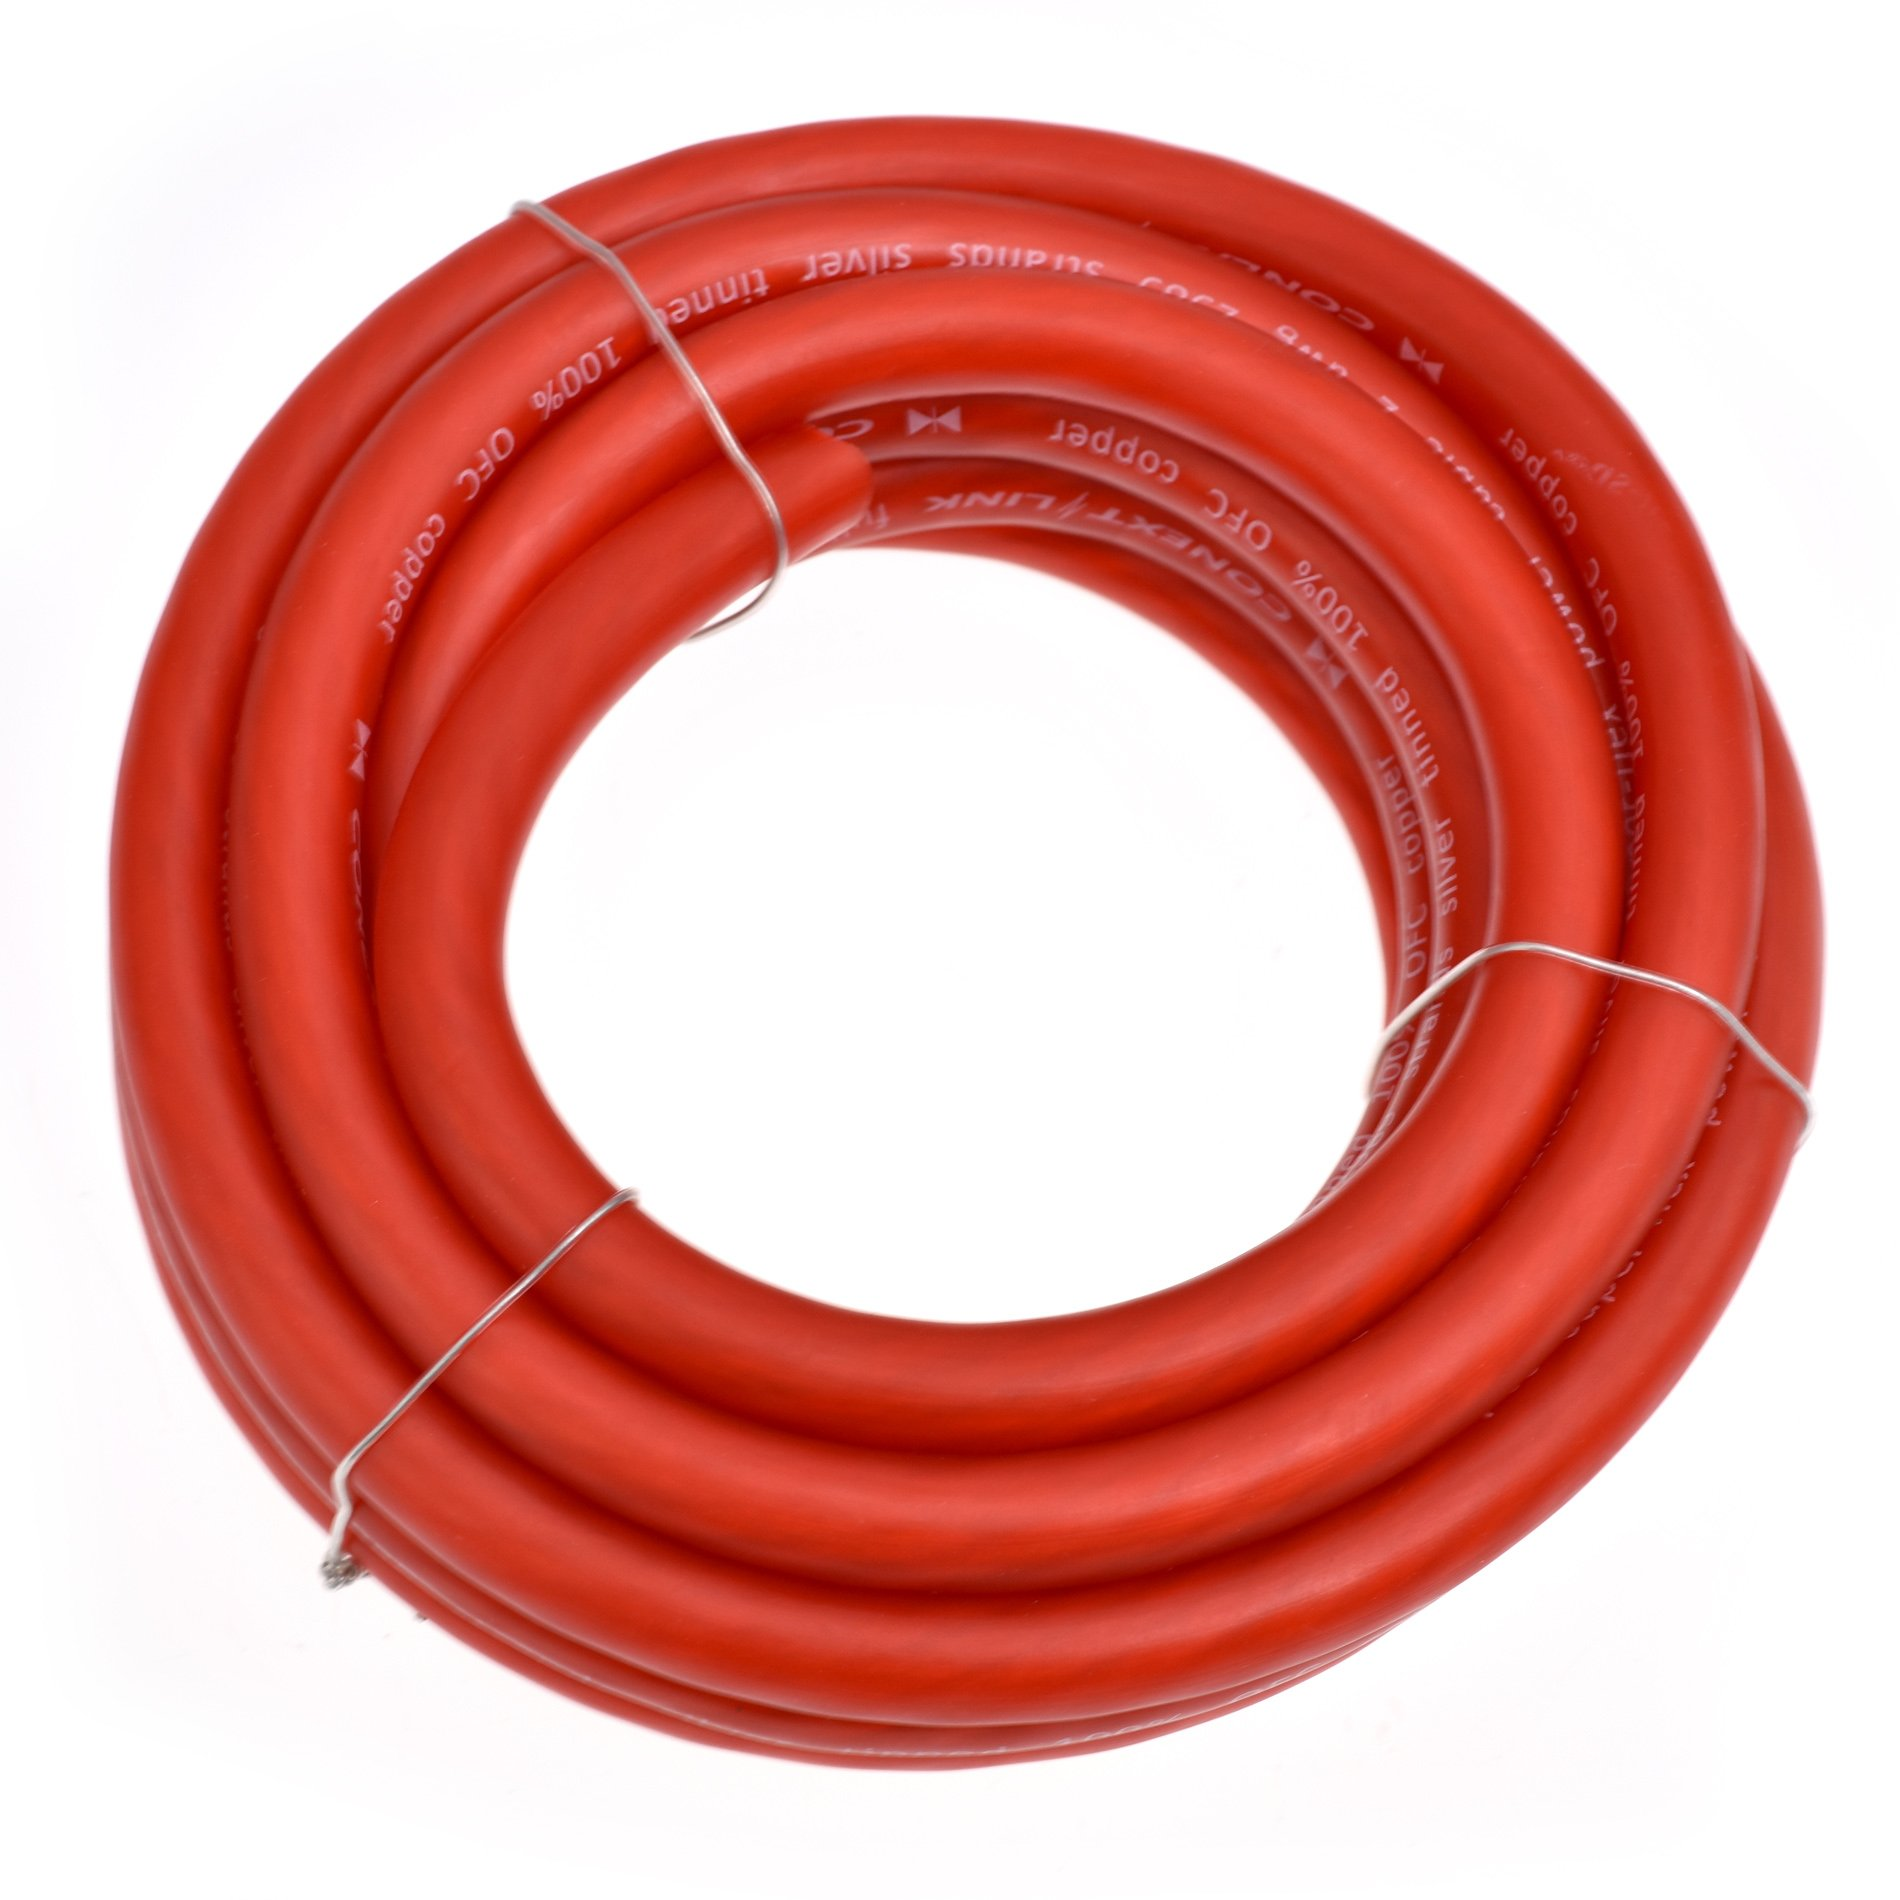 Conext Link 15 FT 2 AWG GA Full Gauge Battery Power Cable Ground Wire Frost Red OFC Copper